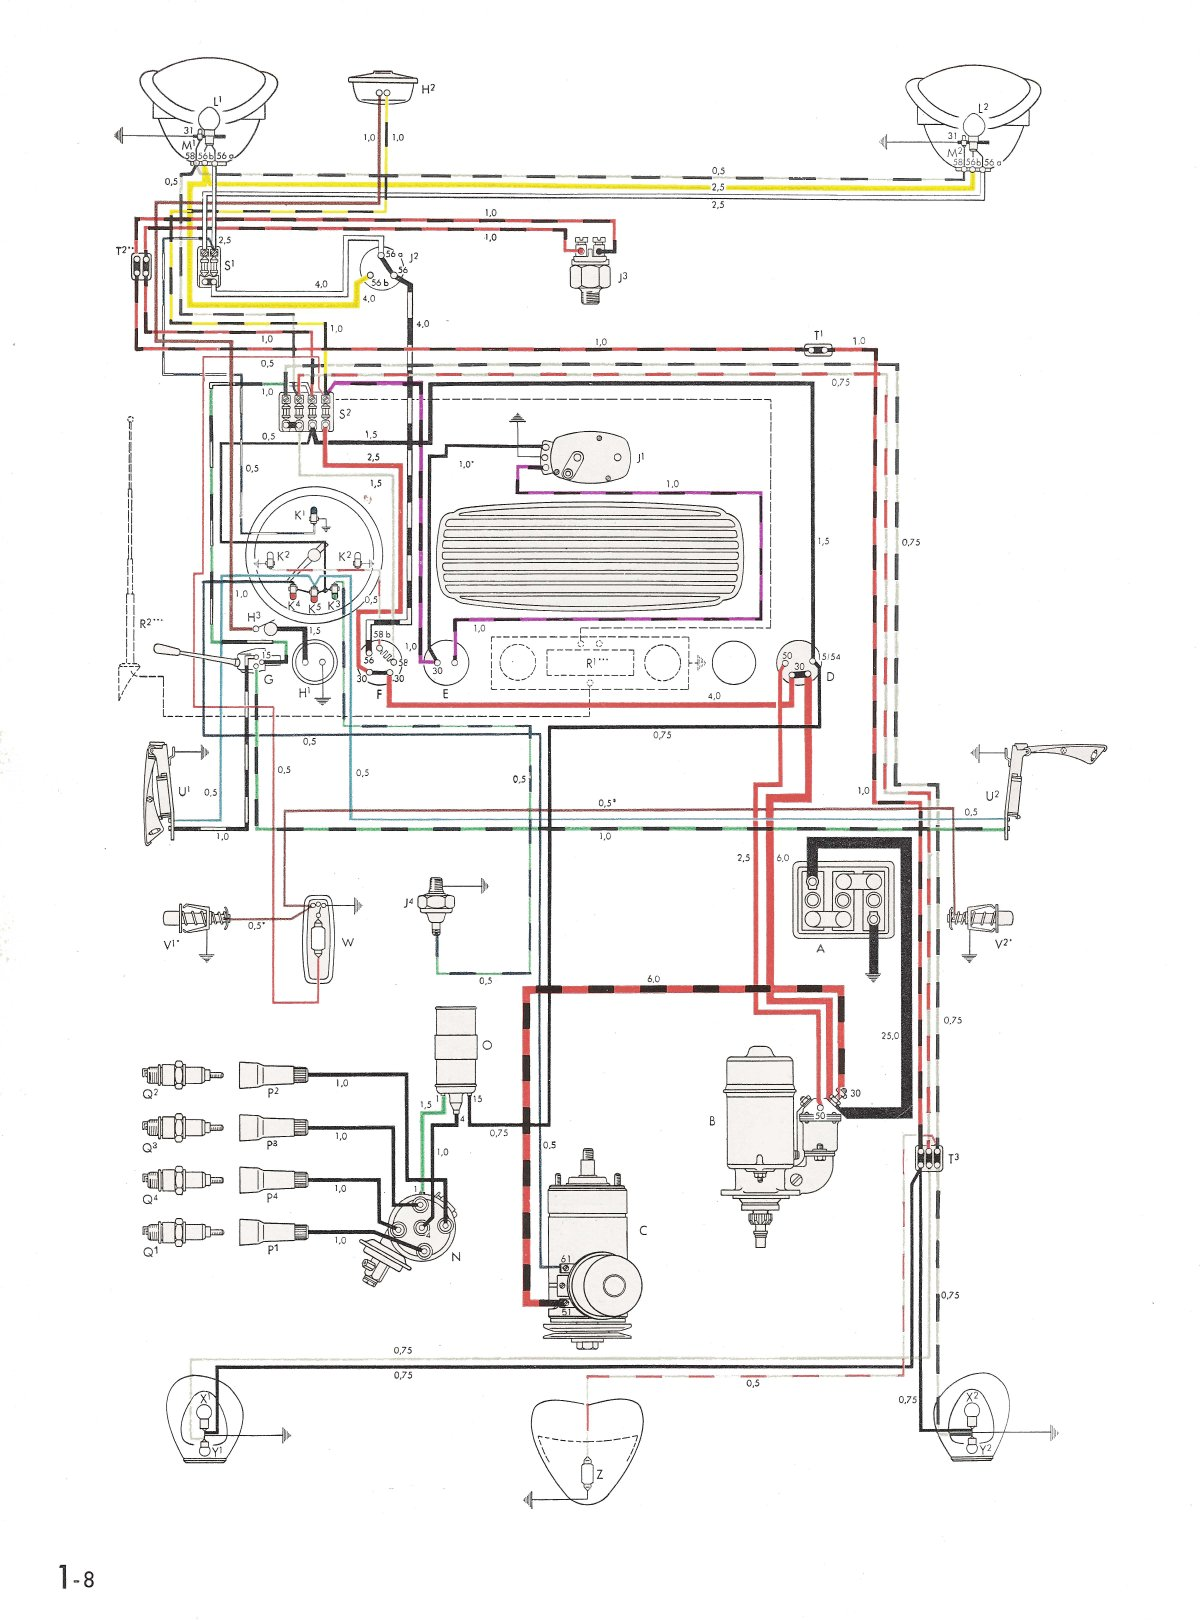 Type 1 Wiring Diagrams Wire Diagram And Technical Data In A Pdf File Of The Electrical 1954